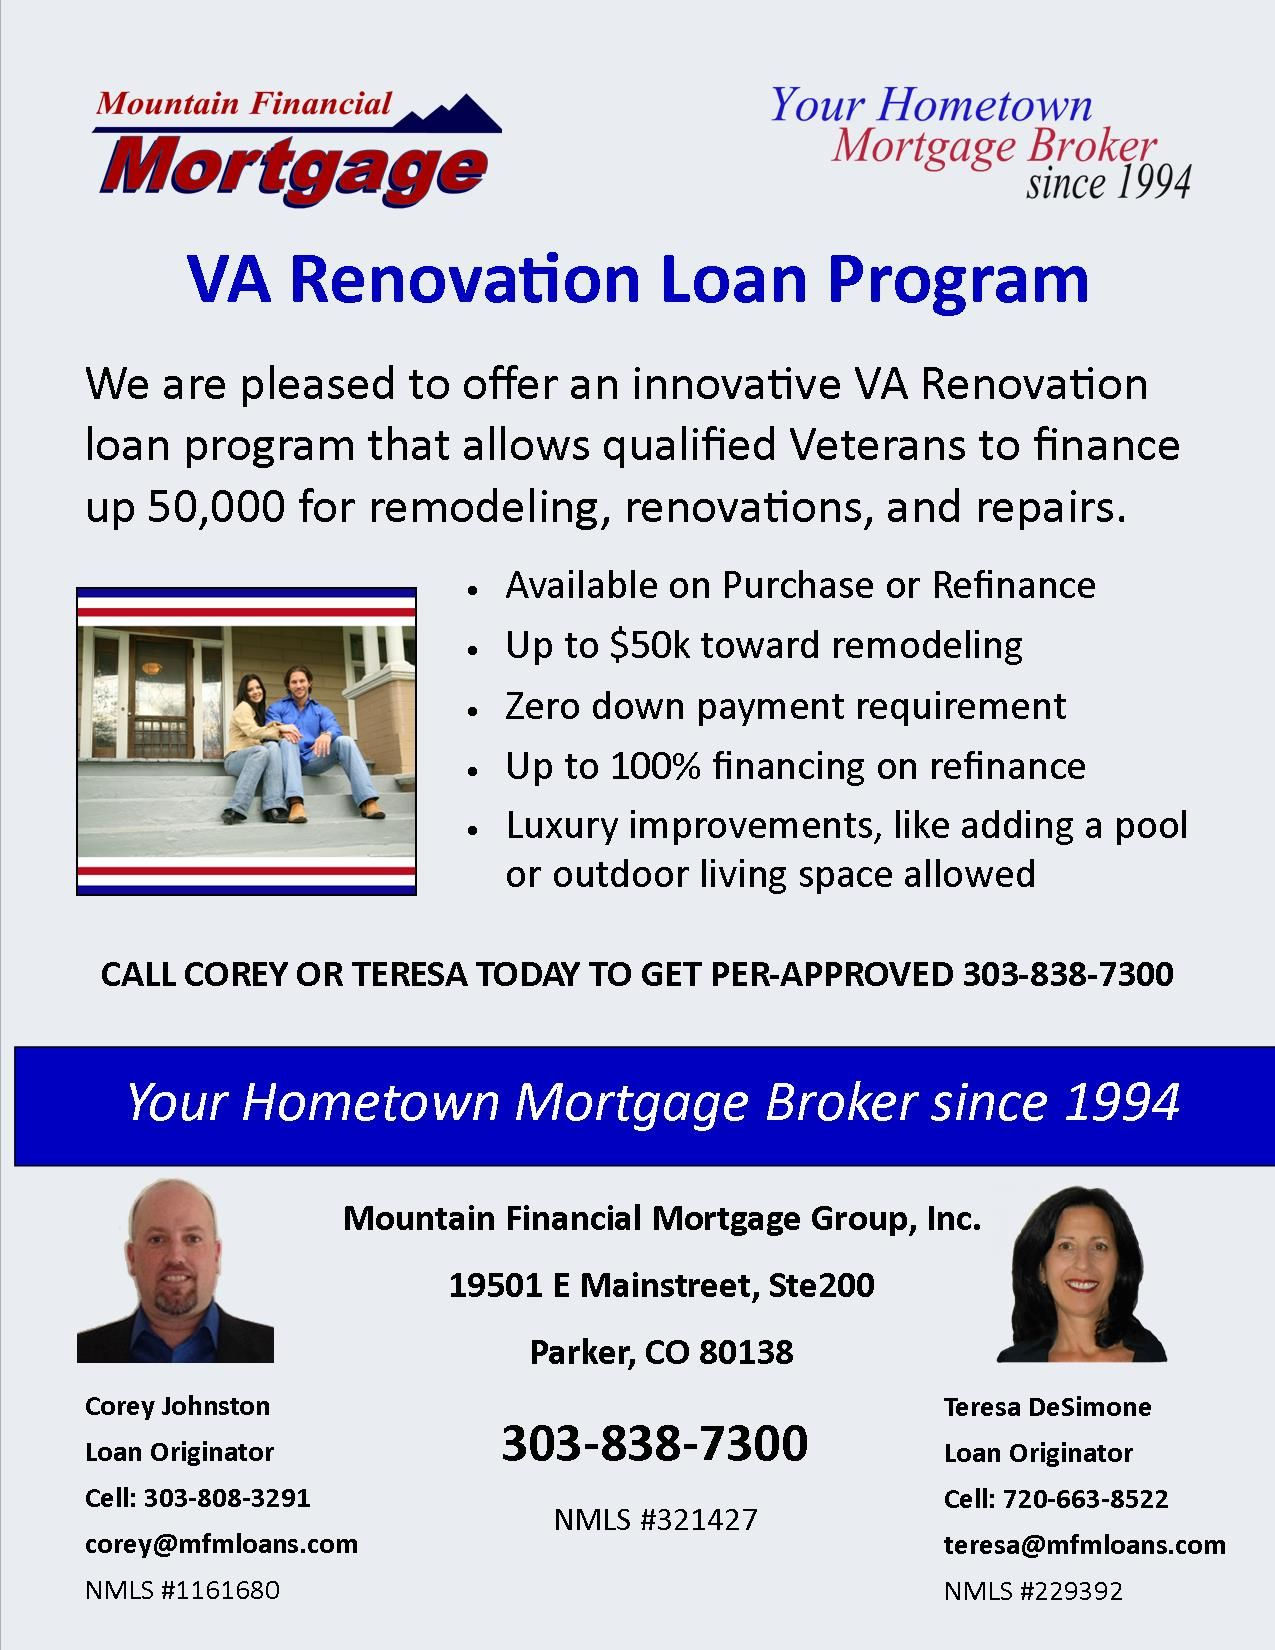 We Are Pleased To Offer An Innovative Va Renovation Loan That Allows Qualified Veterans To Finance Up 50 000 Renovation Loans Home Loans Home Improvement Loans